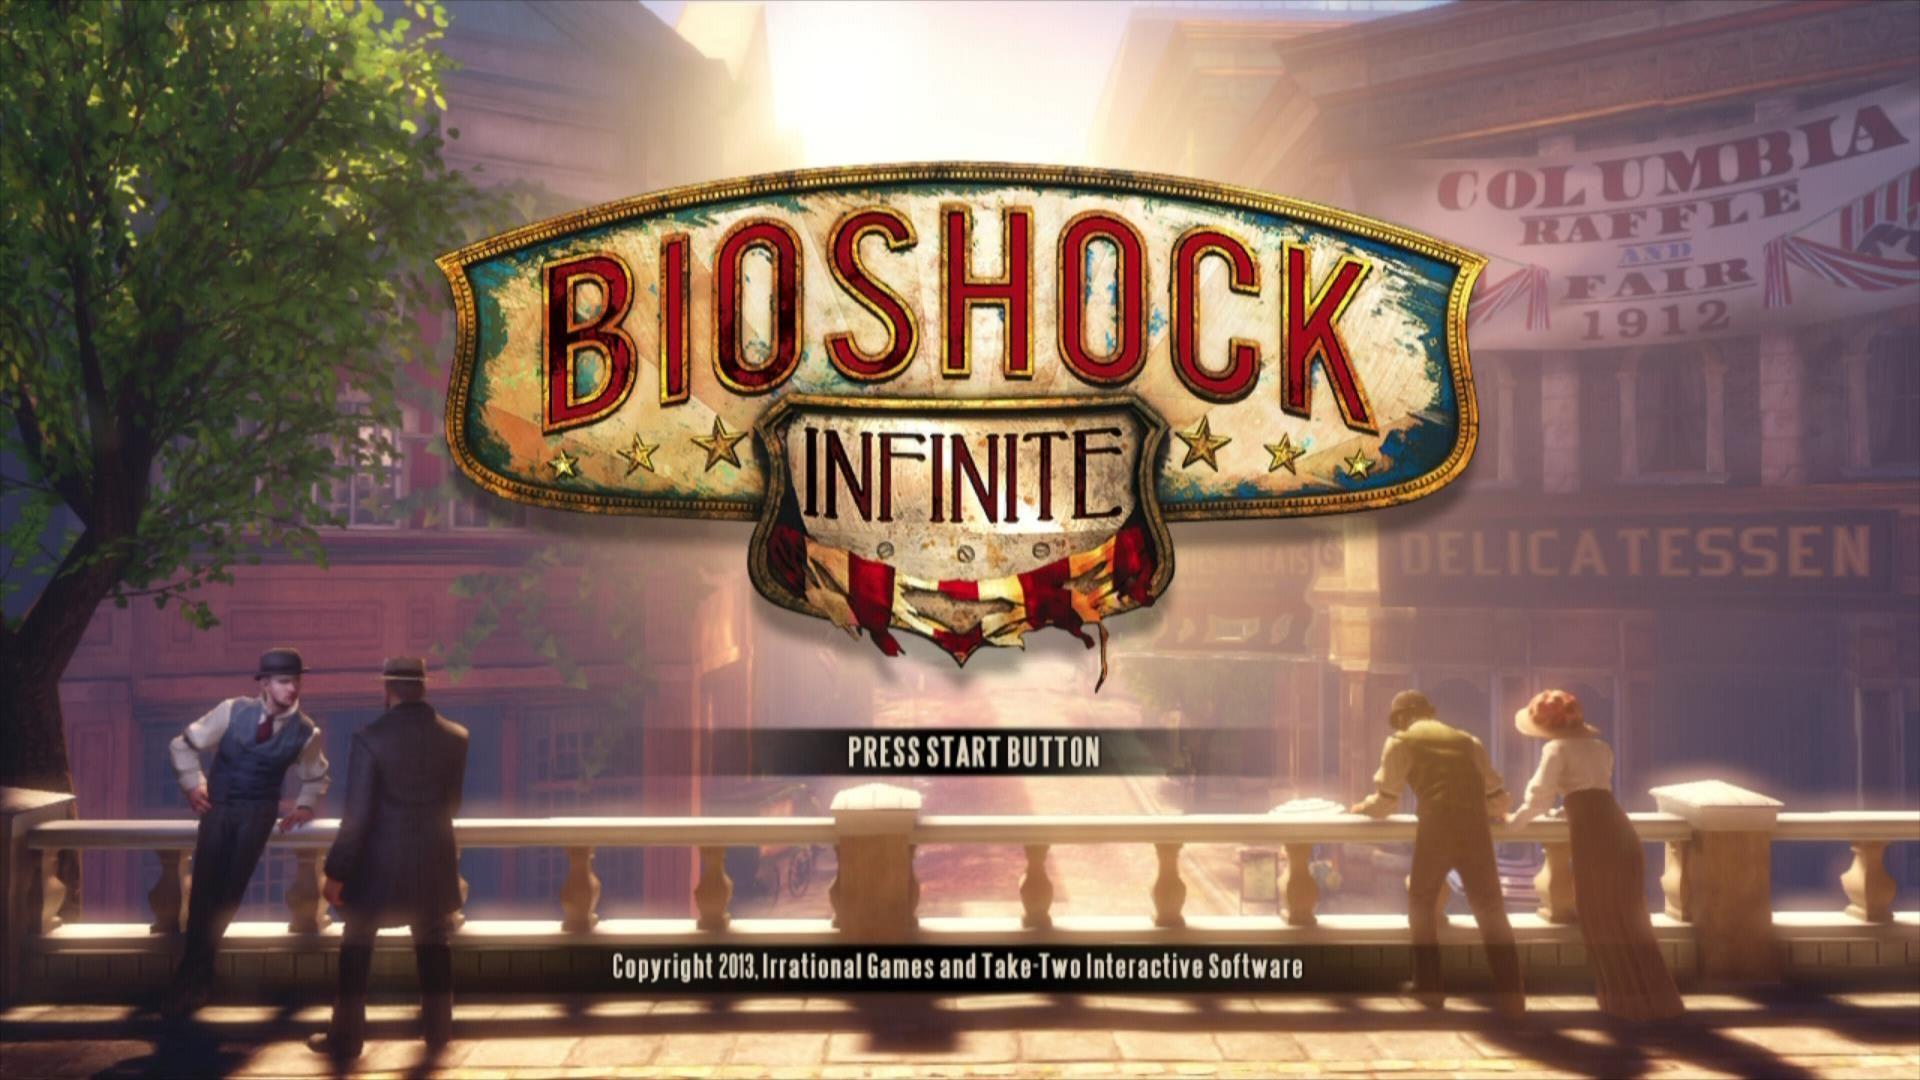 BioShock Infinite Xbox 360 Start screen